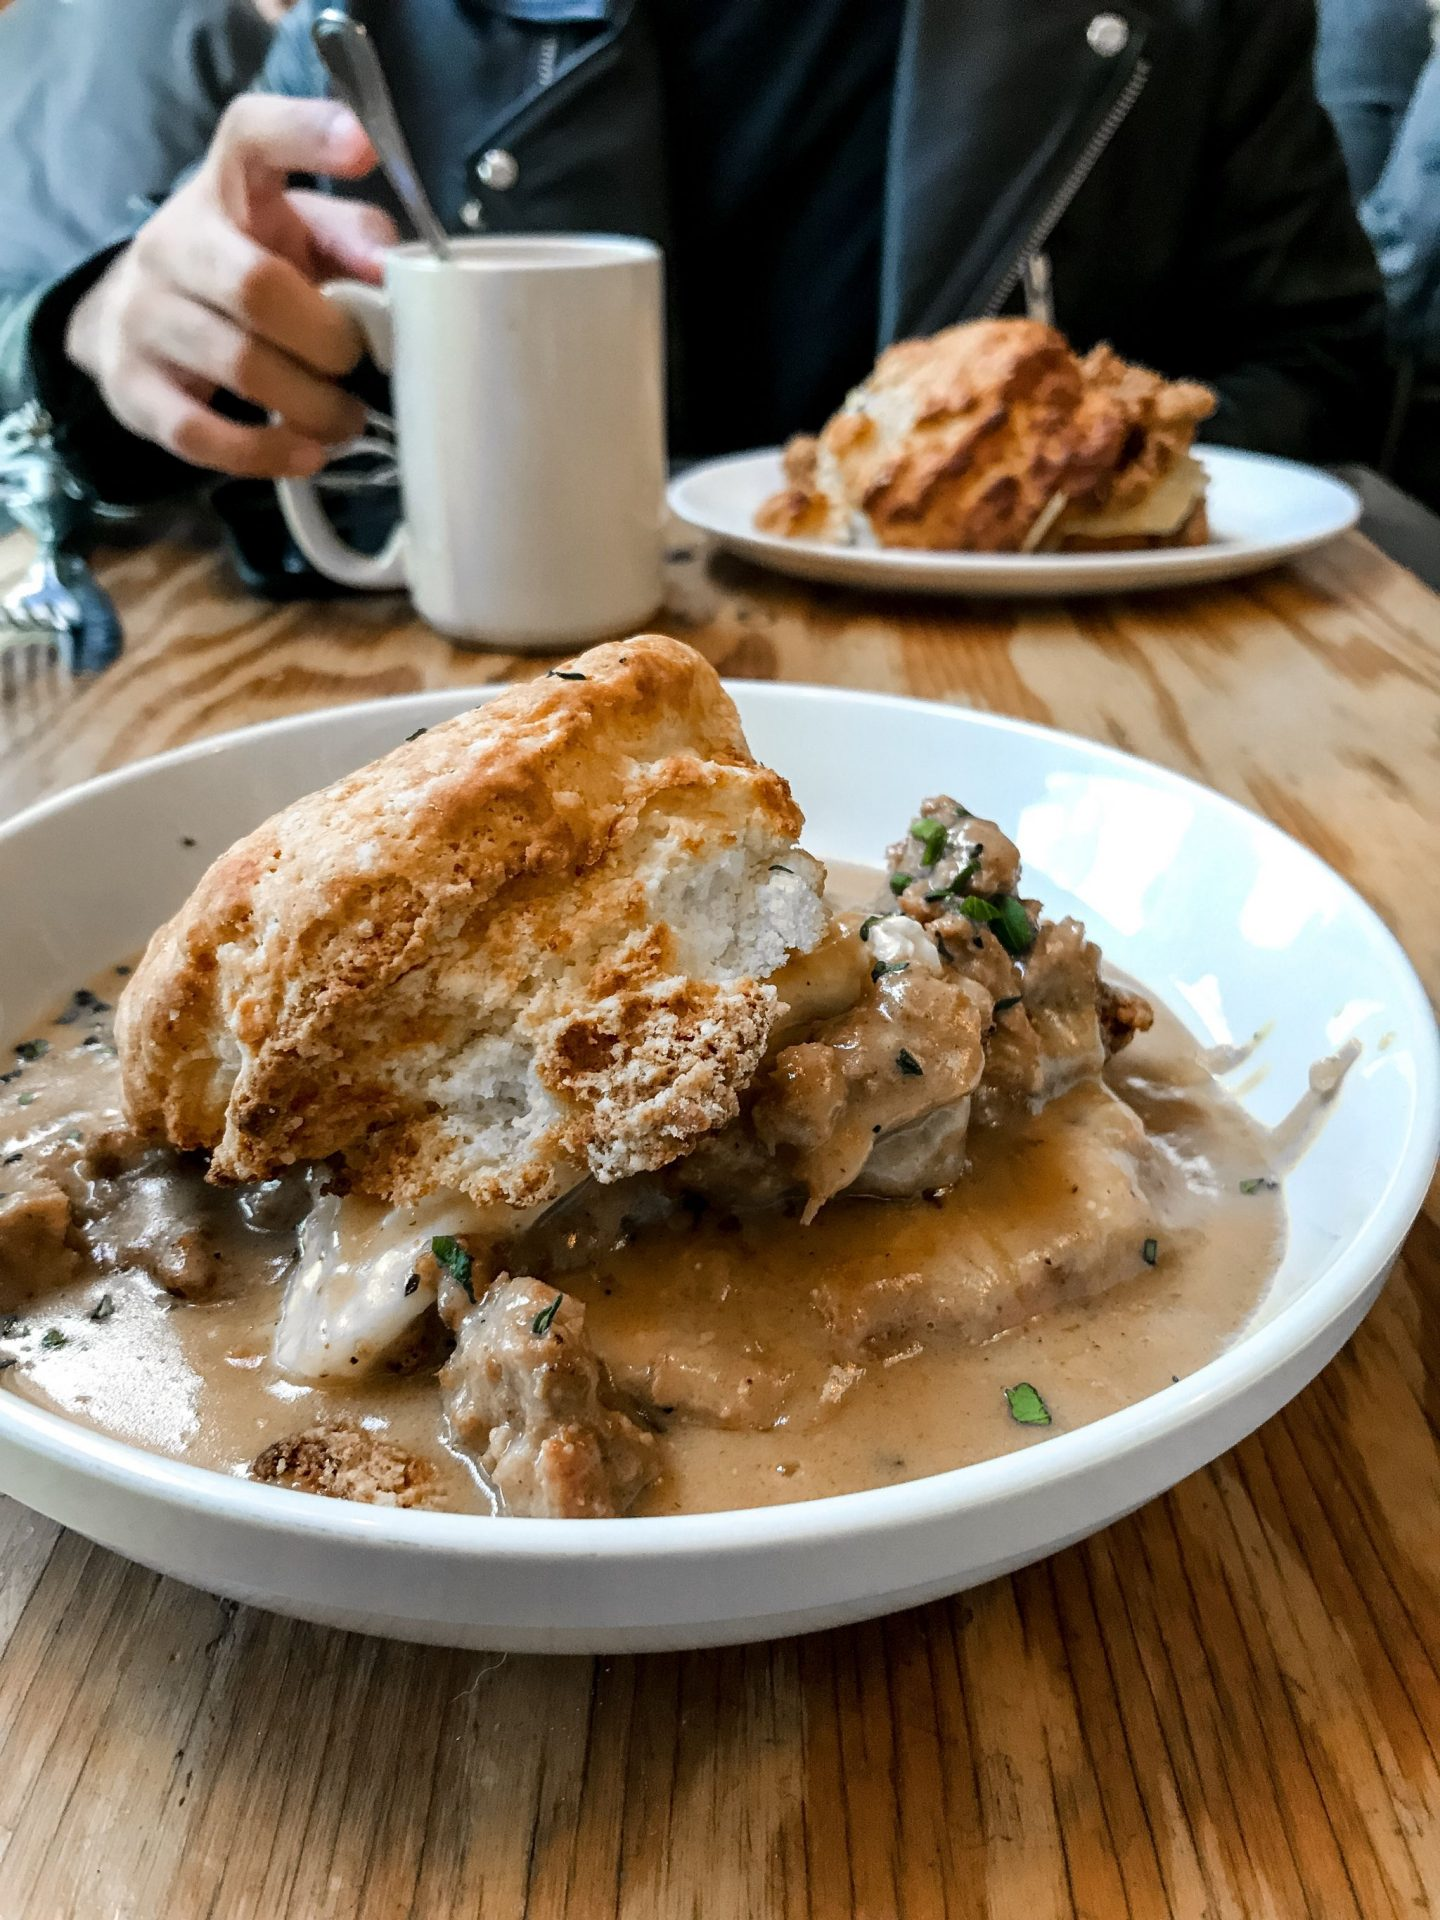 Brunch seattle – brunch in seattle – best brunch seattle – brunch in north seattle – seattle capitol hill brunch – breakfast spots in seattle